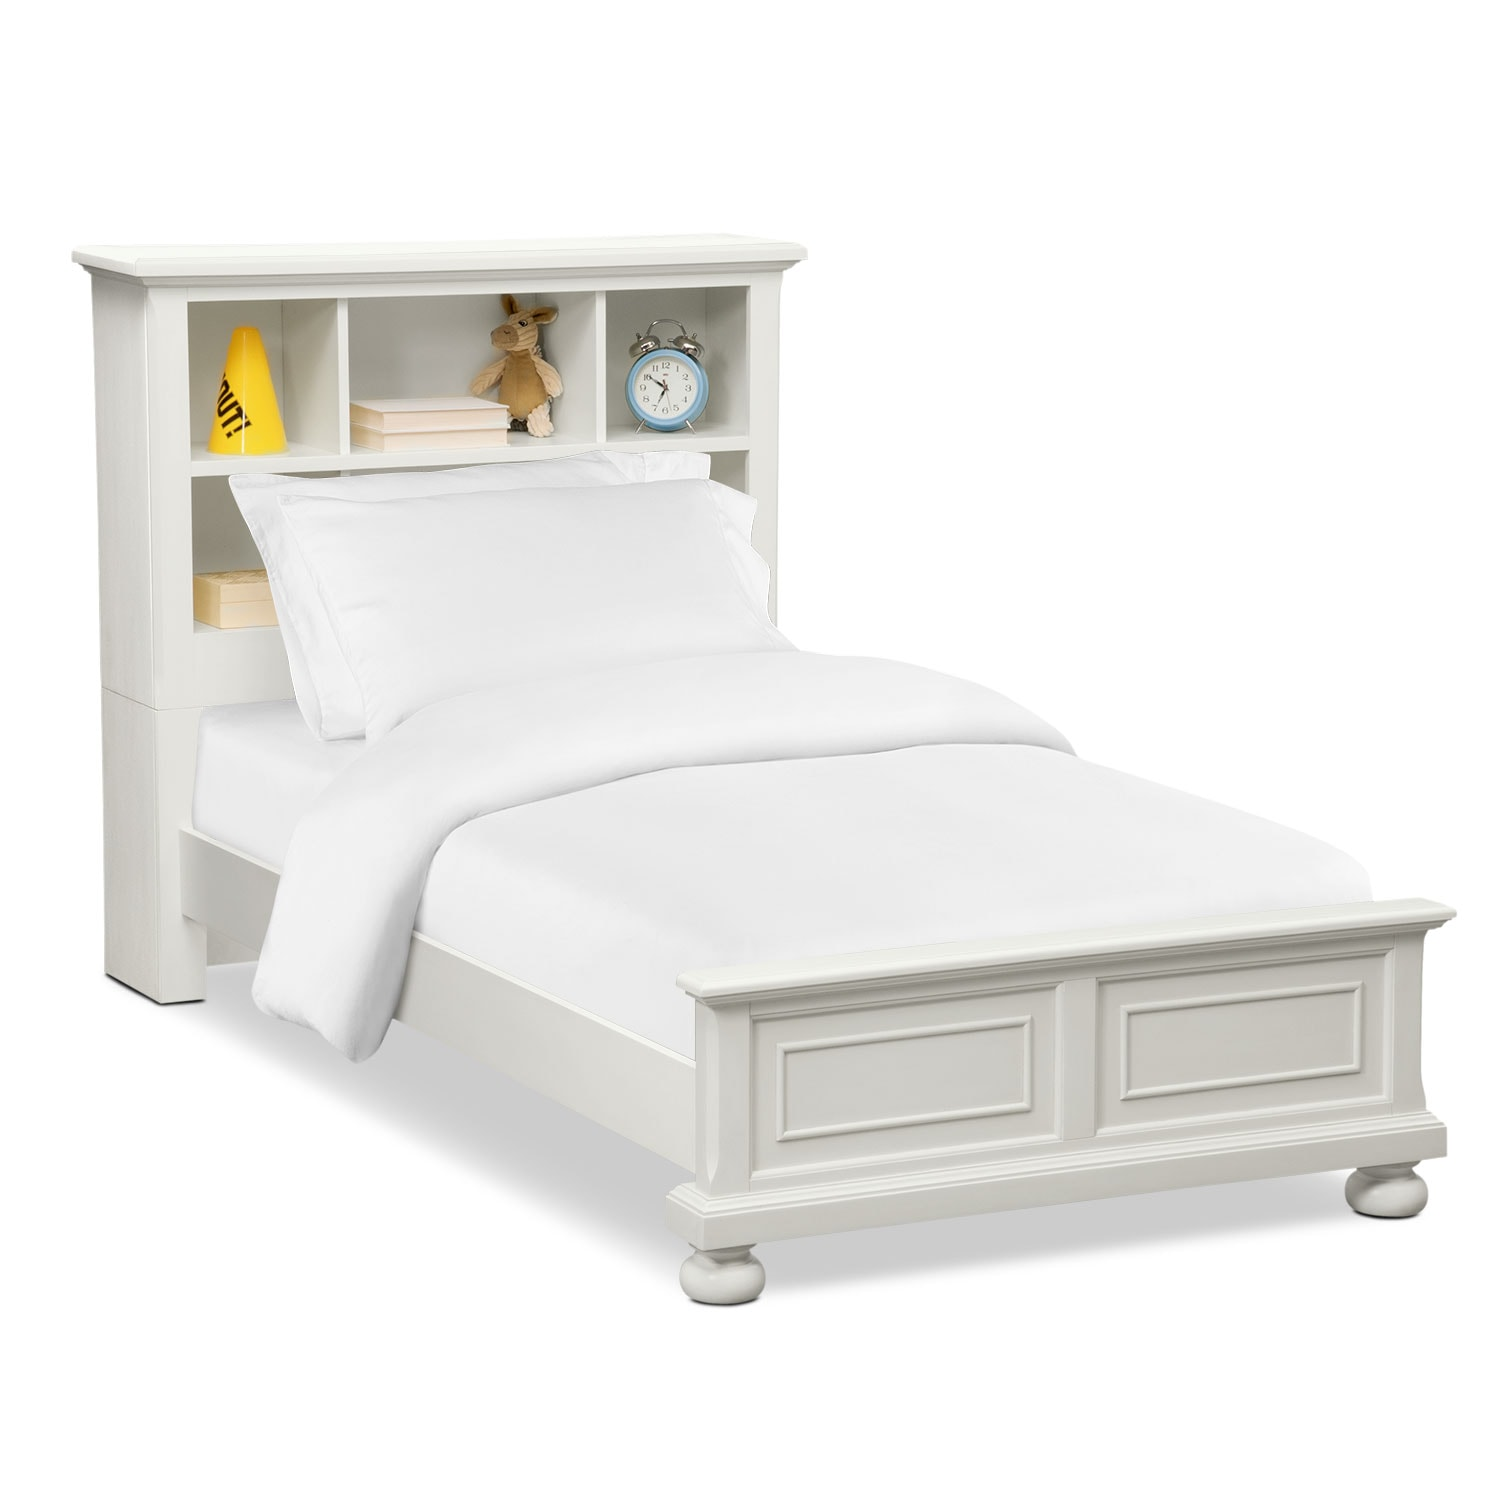 Hanover Youth Full Bookcase Bed - White